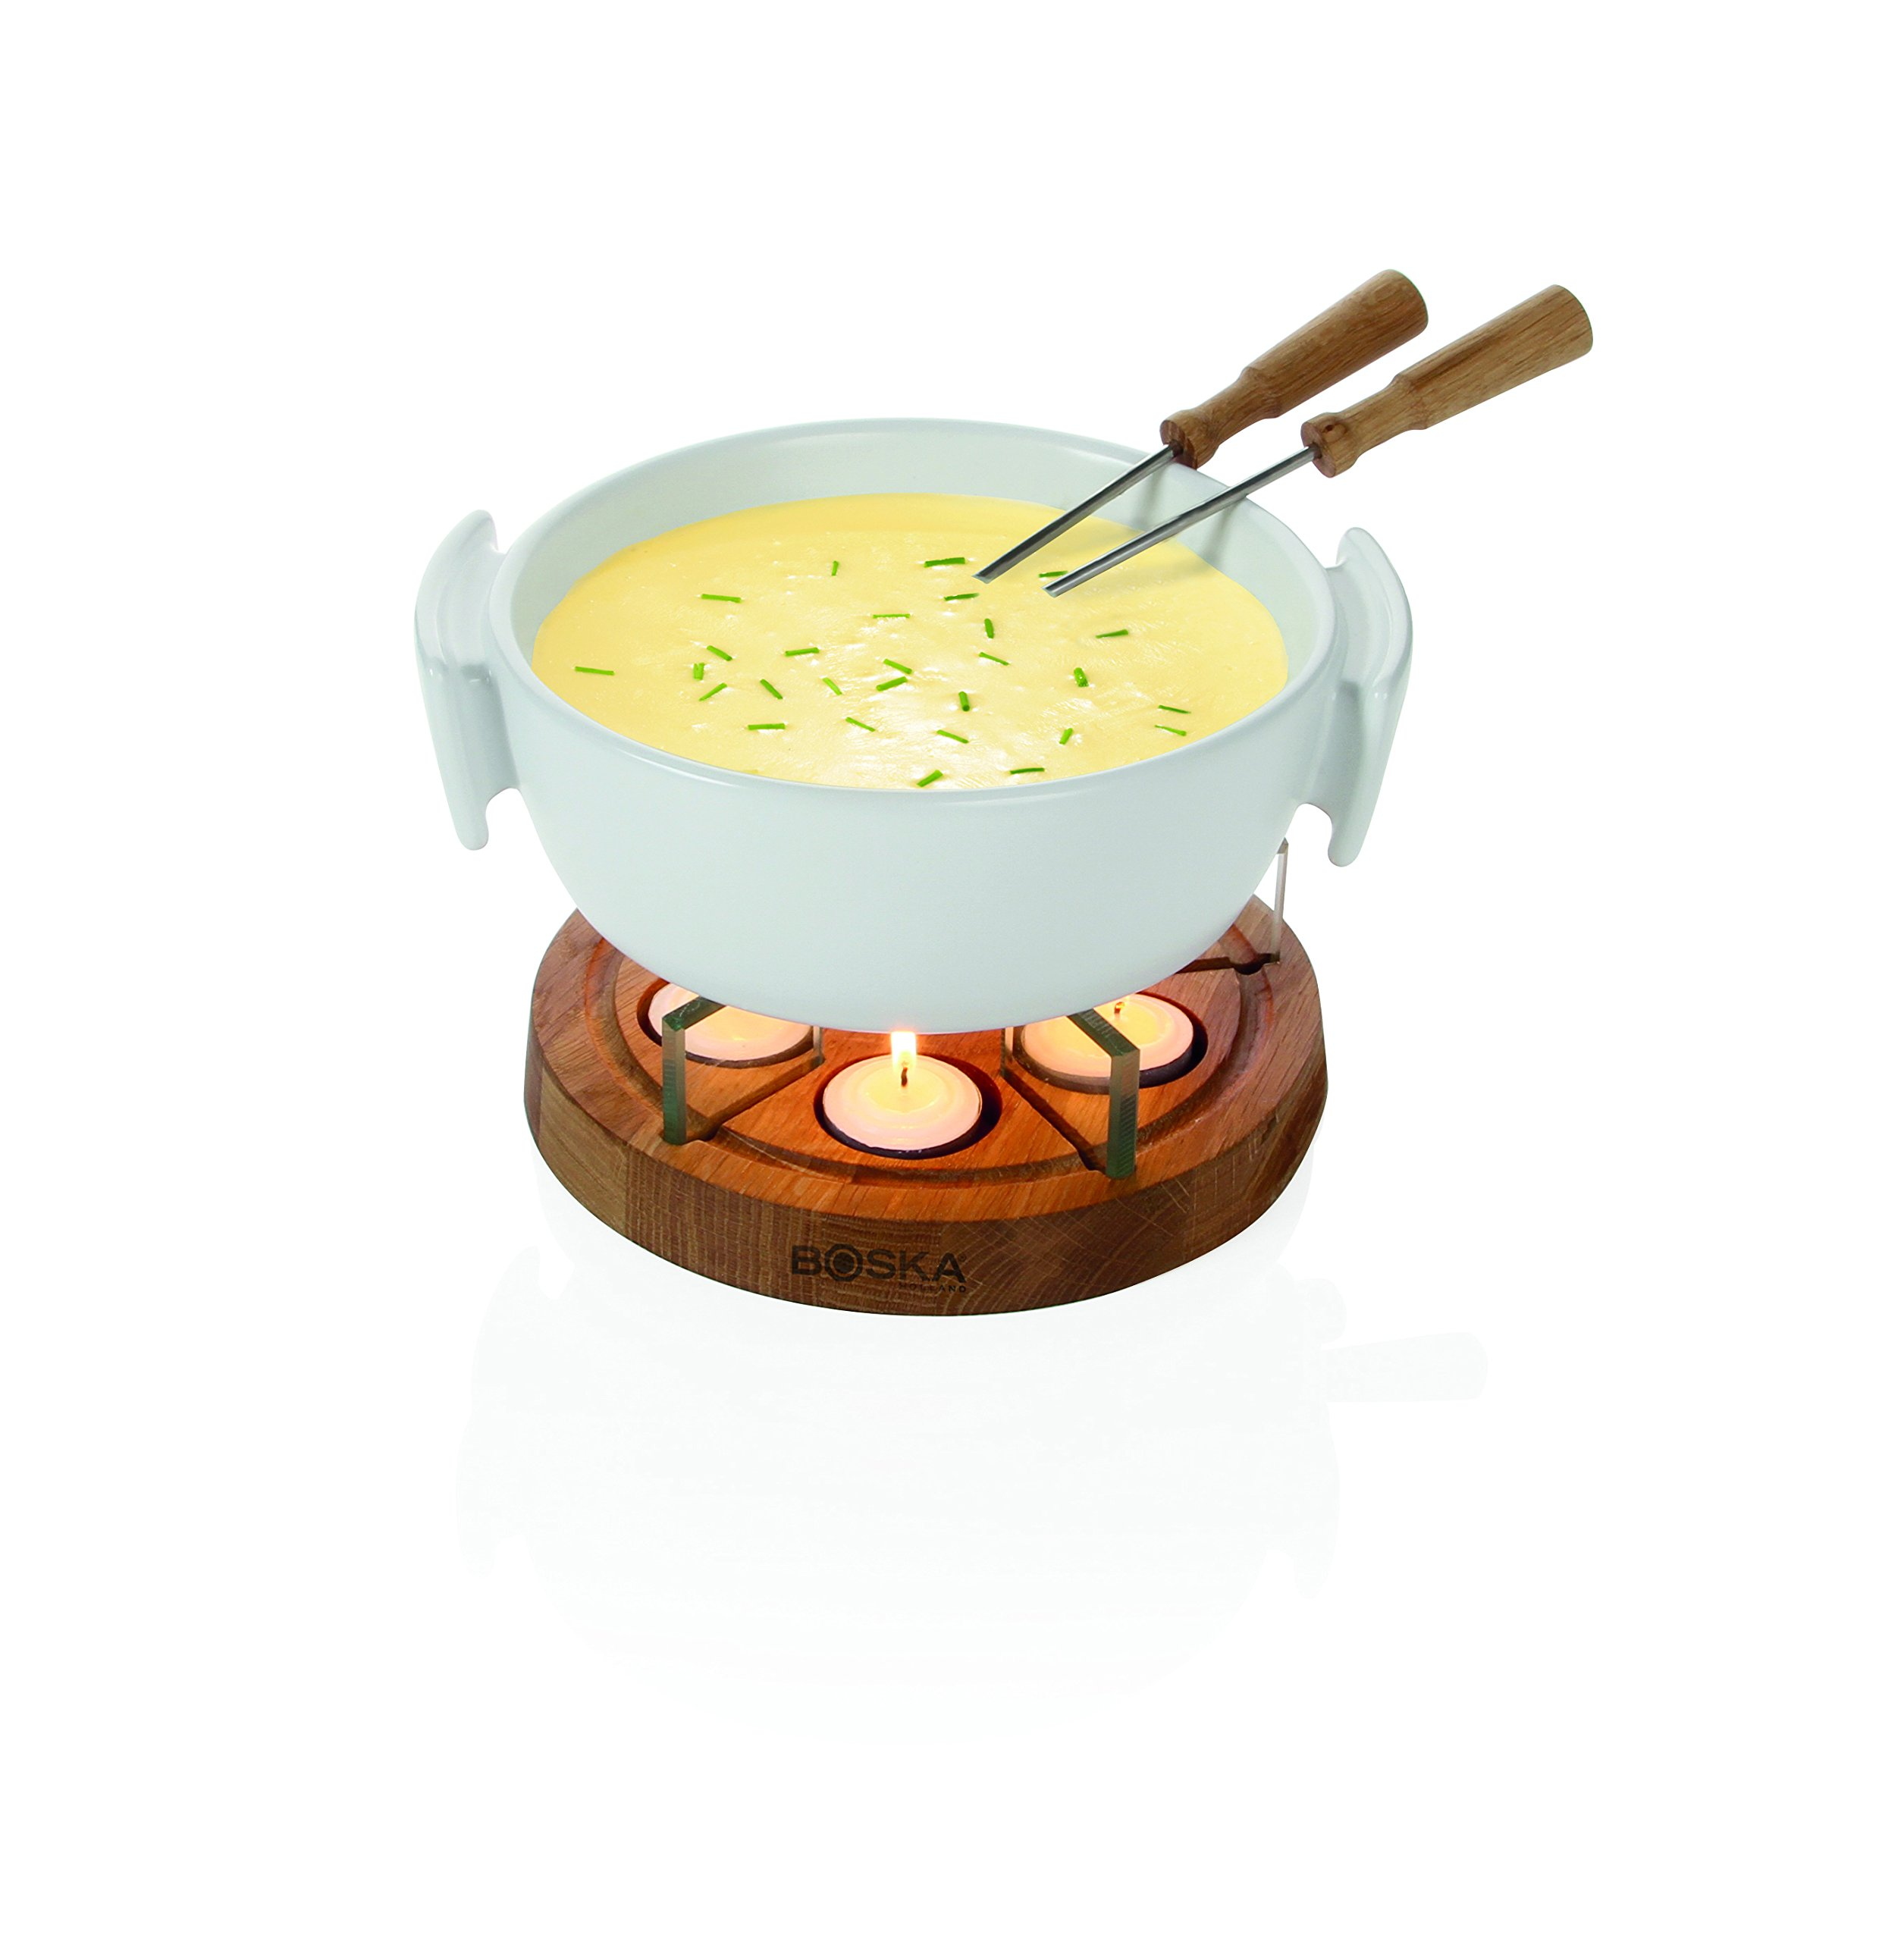 Boska Holland Tea light Fondue Set with Oak Wood Base, 1 L White Stoneware Pot, Life Collection